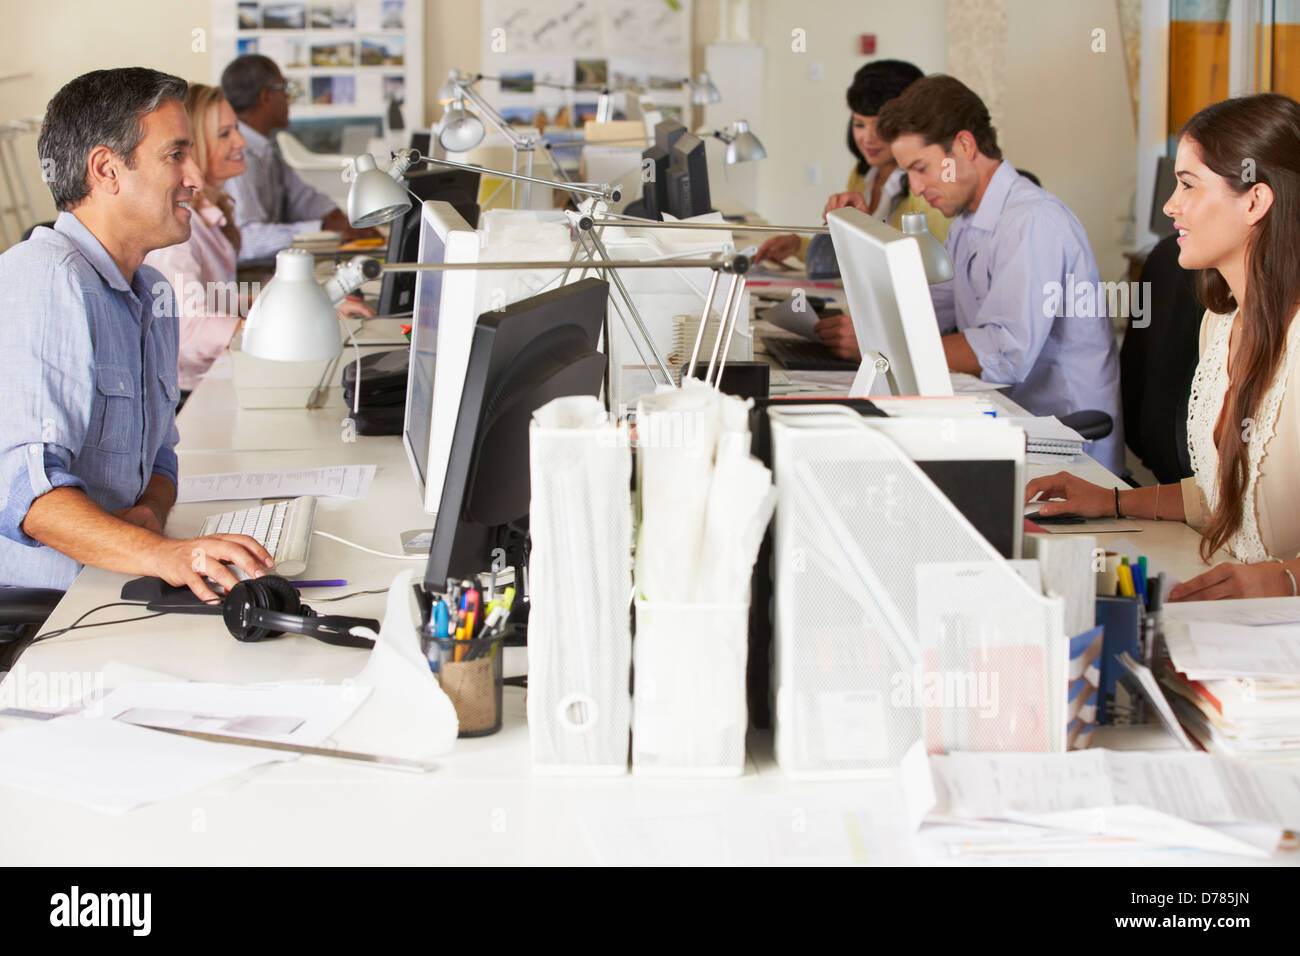 Team Working At Desks In Busy Office - Stock Image